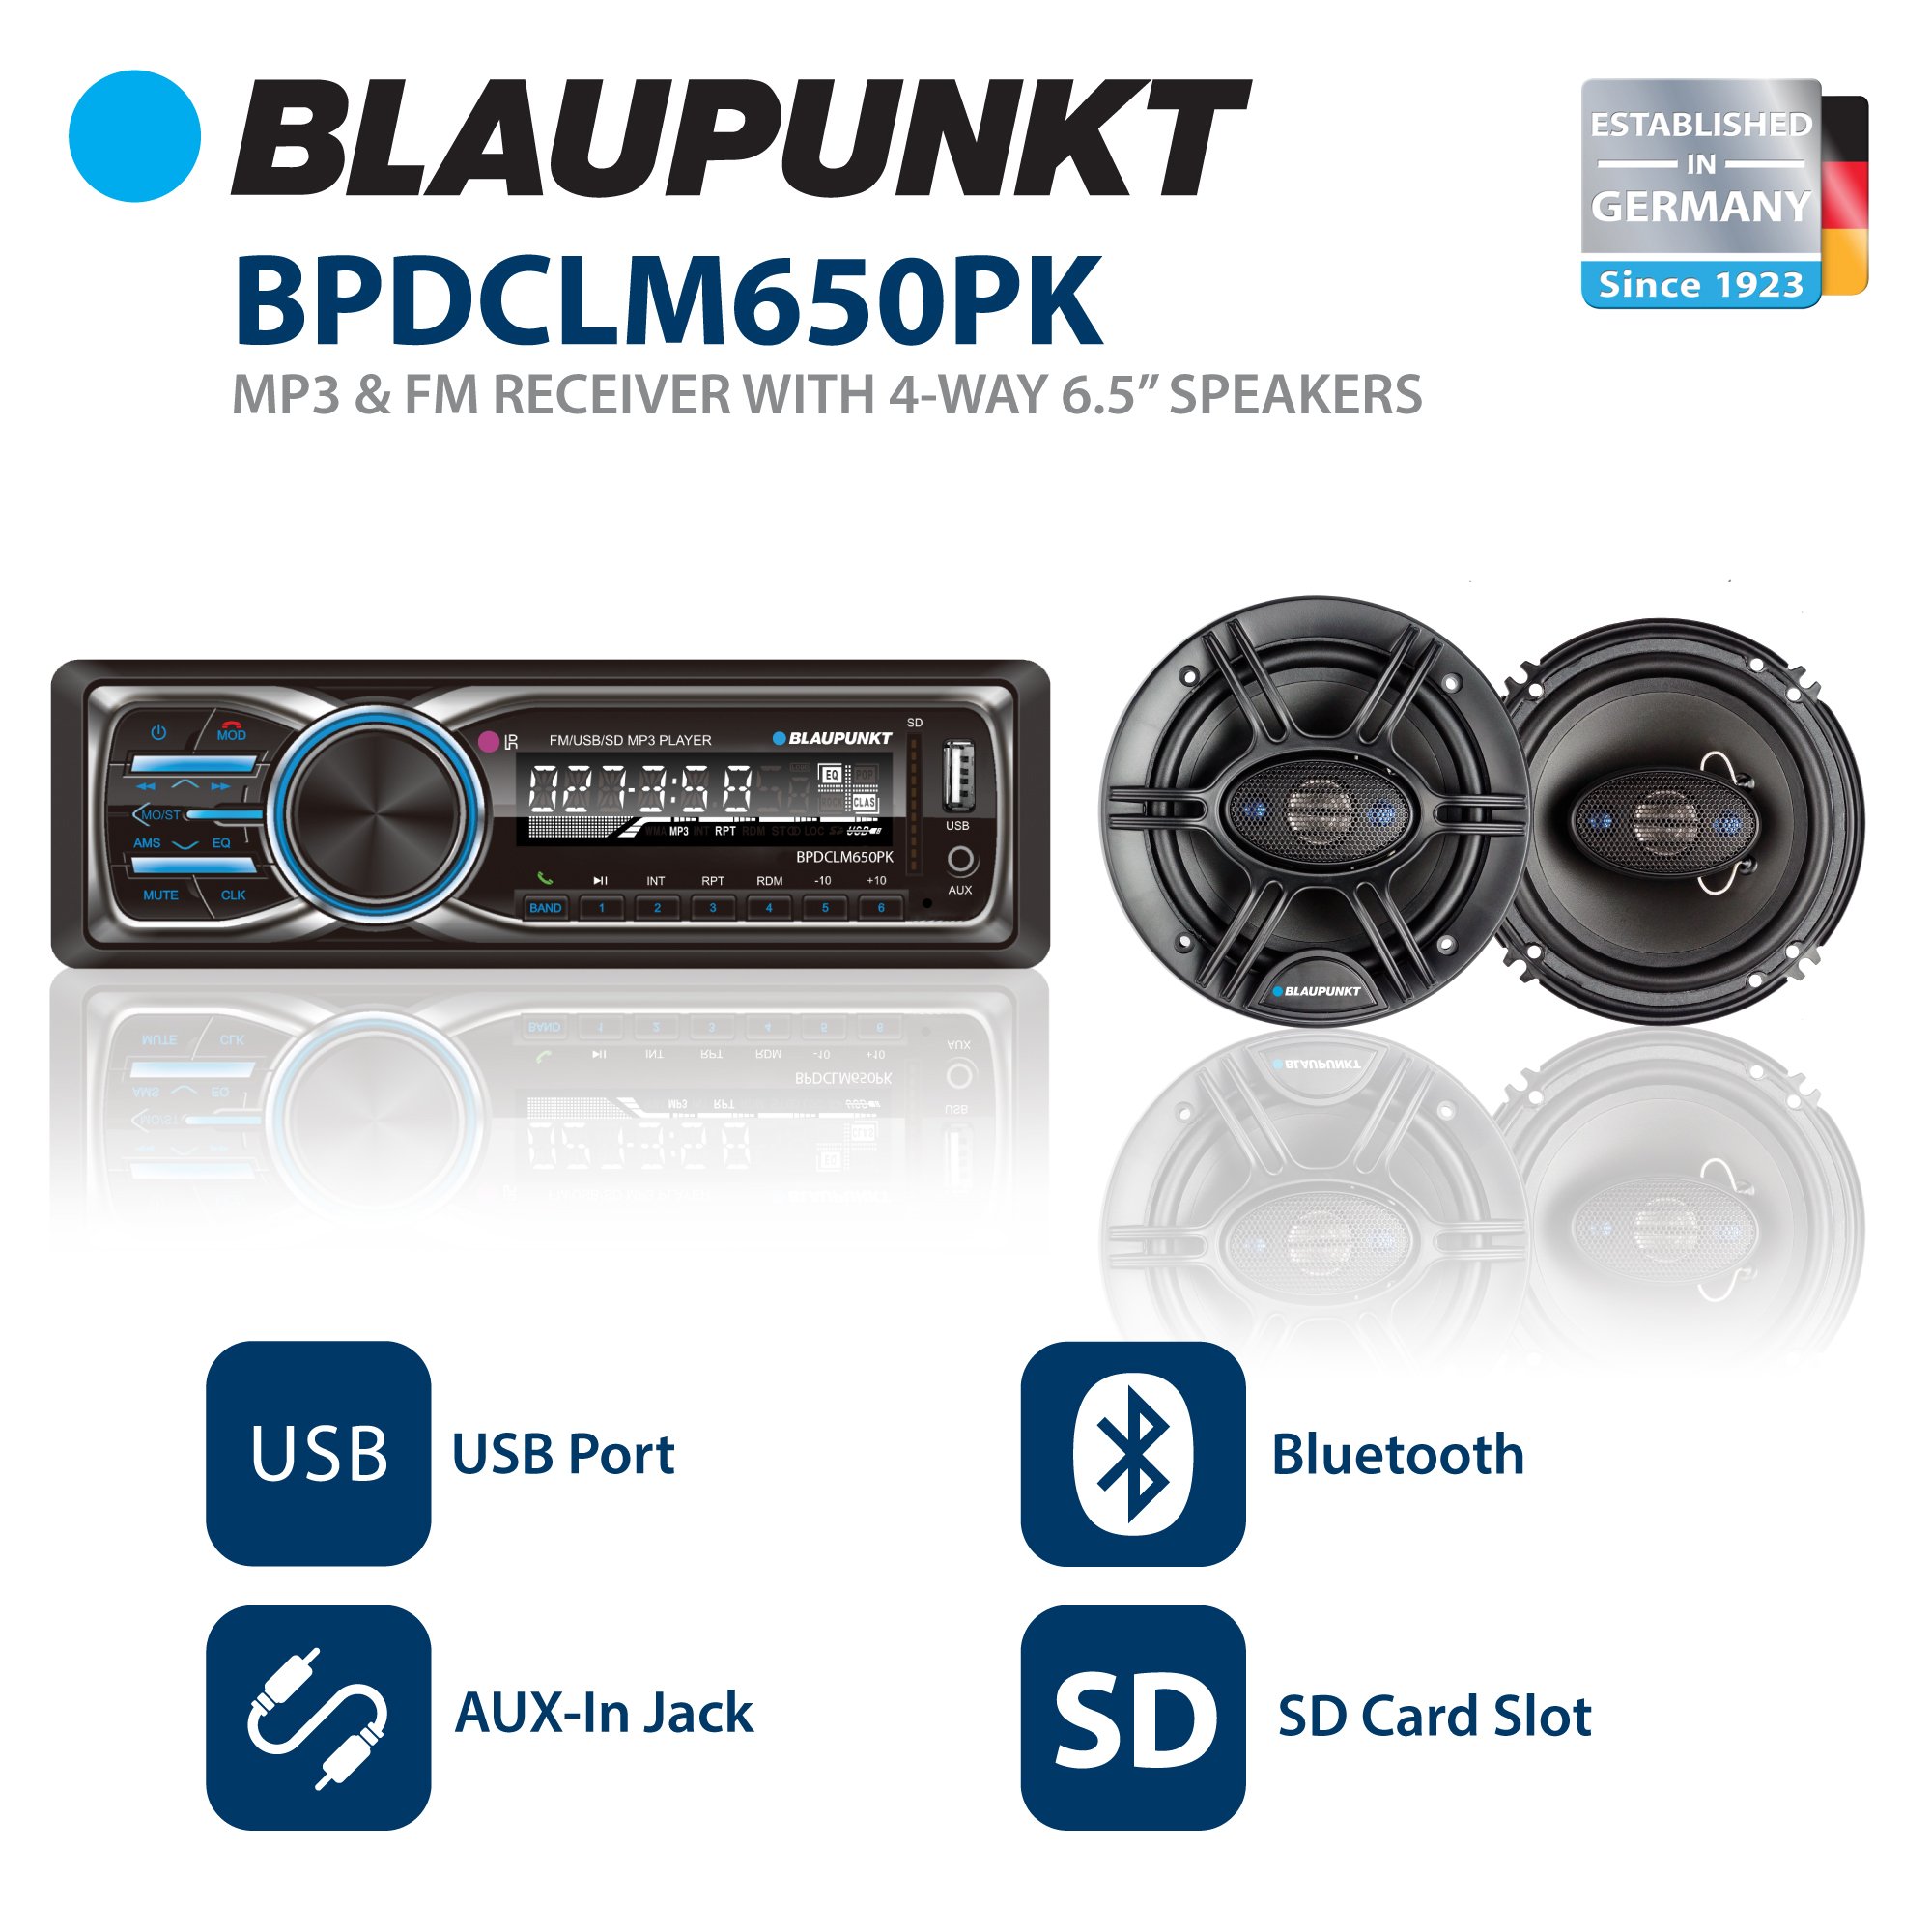 Blaupunkt Columbus100 Stereo Receiver + GTX650 Coaxial Speakers Bundle